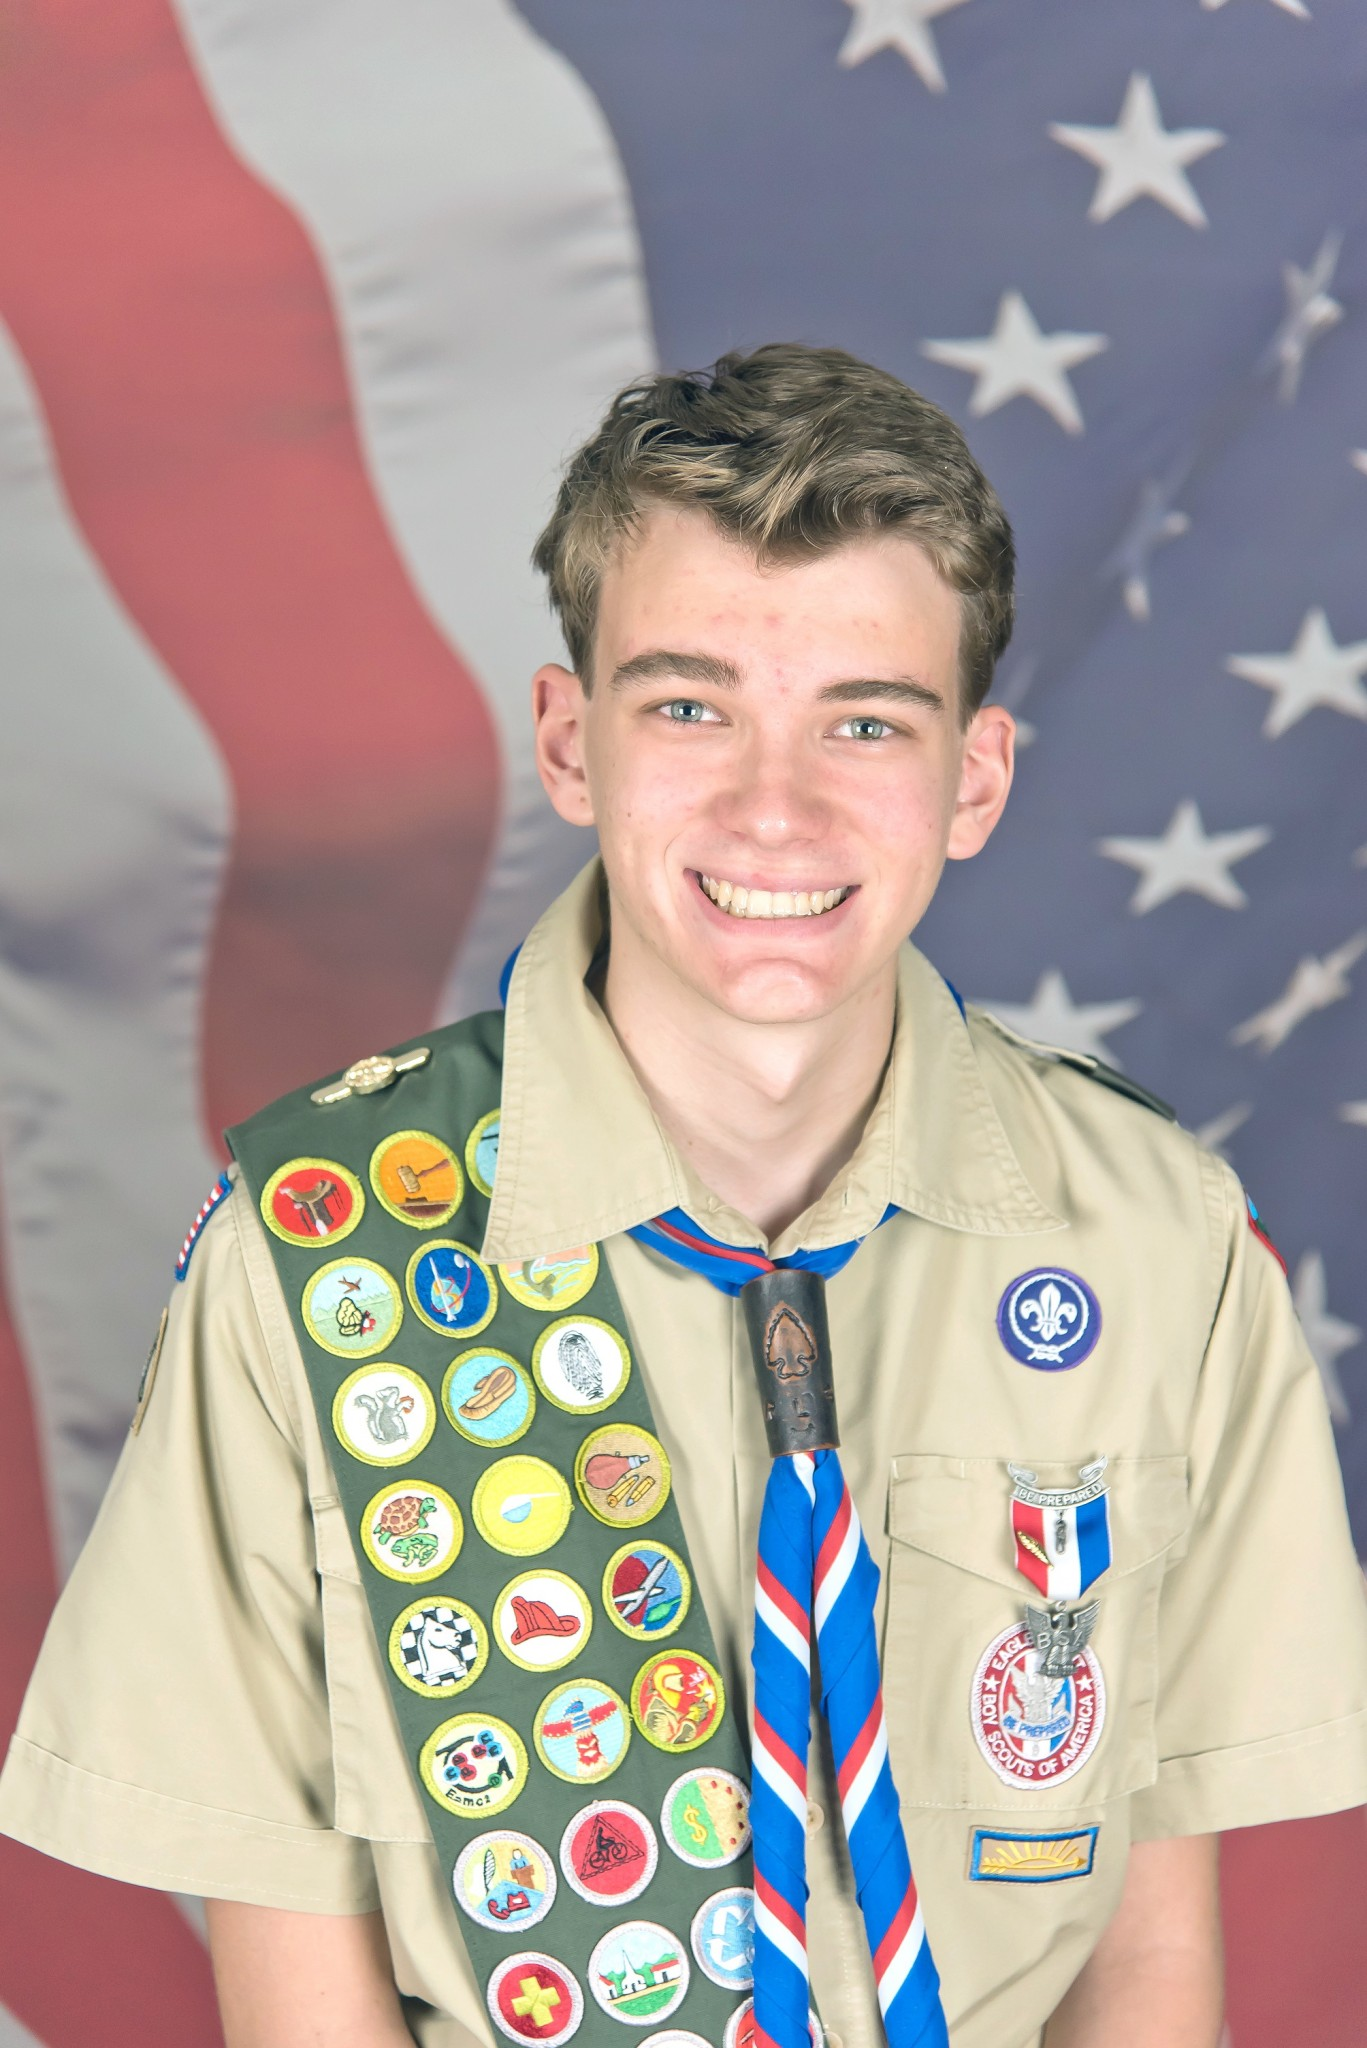 Matthew Robinson, of Curtice, earned the rank of Eagle Scout in a court of honor ceremony Aug. 4. He is a member of Troop #342, sponsored by St. John Lutheran Church, Williston. (Submitted photo)